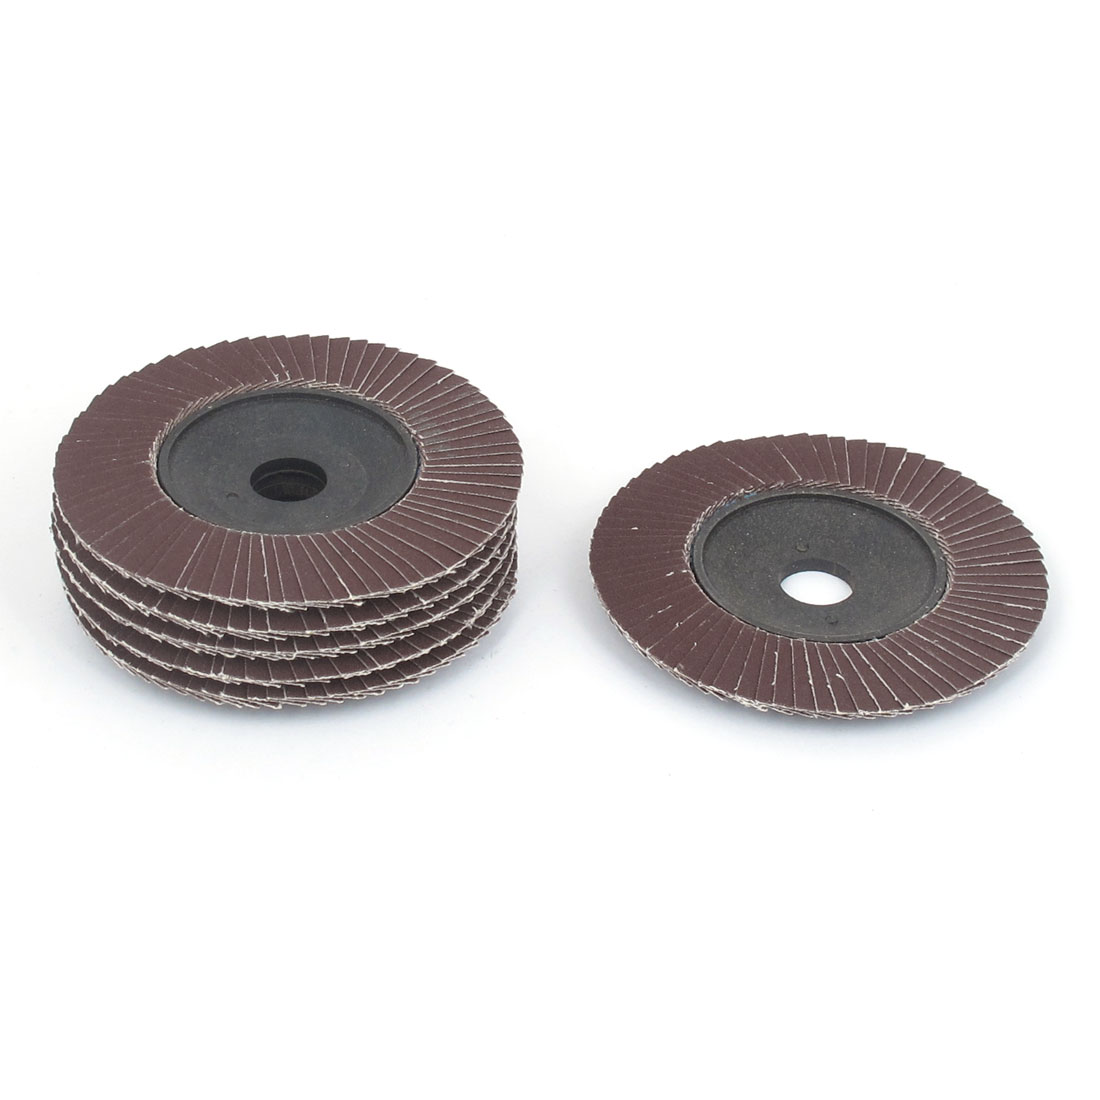 "6 Pcs 4"" x 20mm Sanding Flap Disc Grinding Wheel 320 Grit for Angle Grinder"